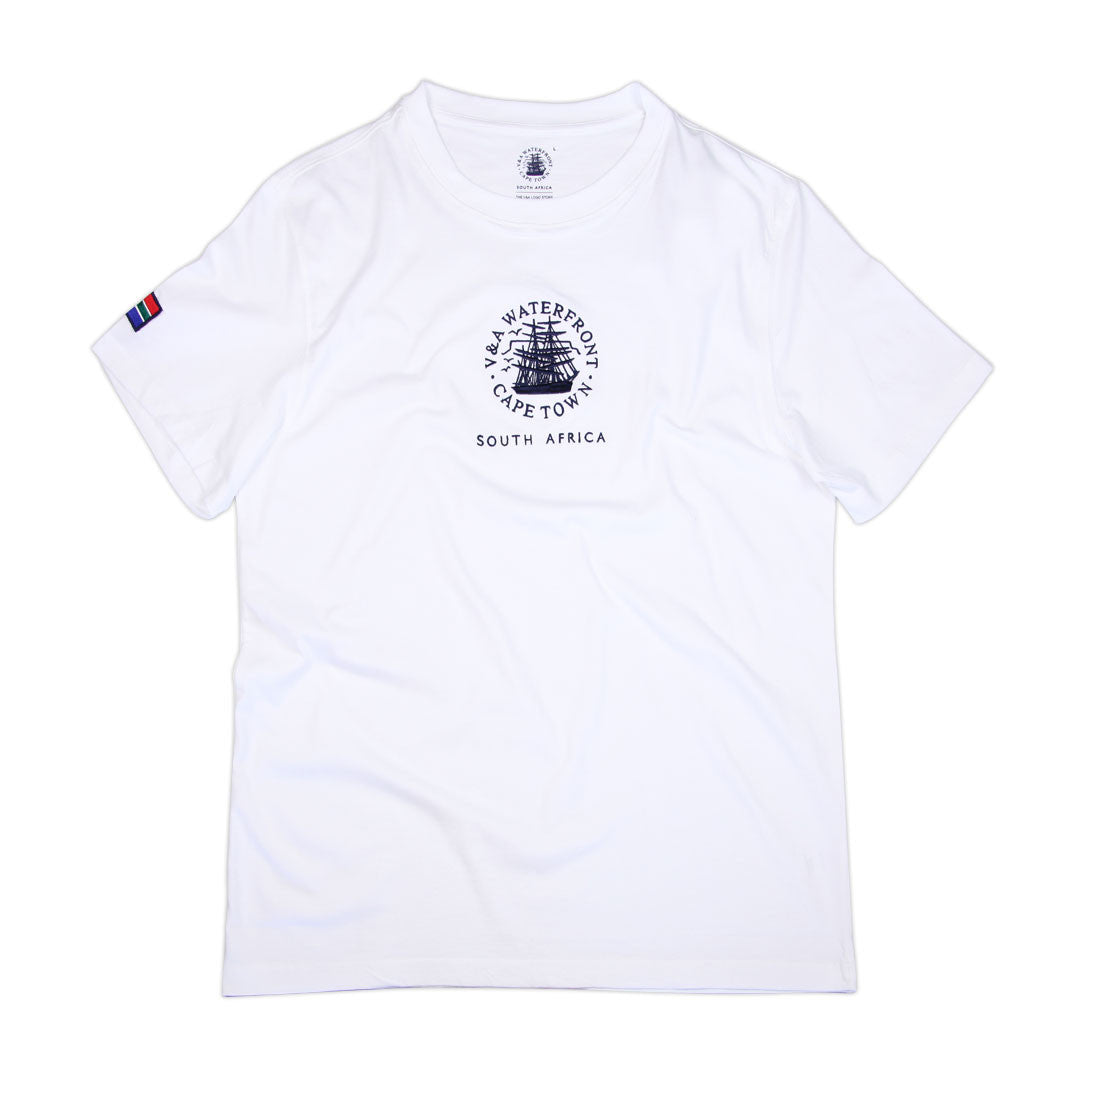 Mens Short Sleeve T-shirt White